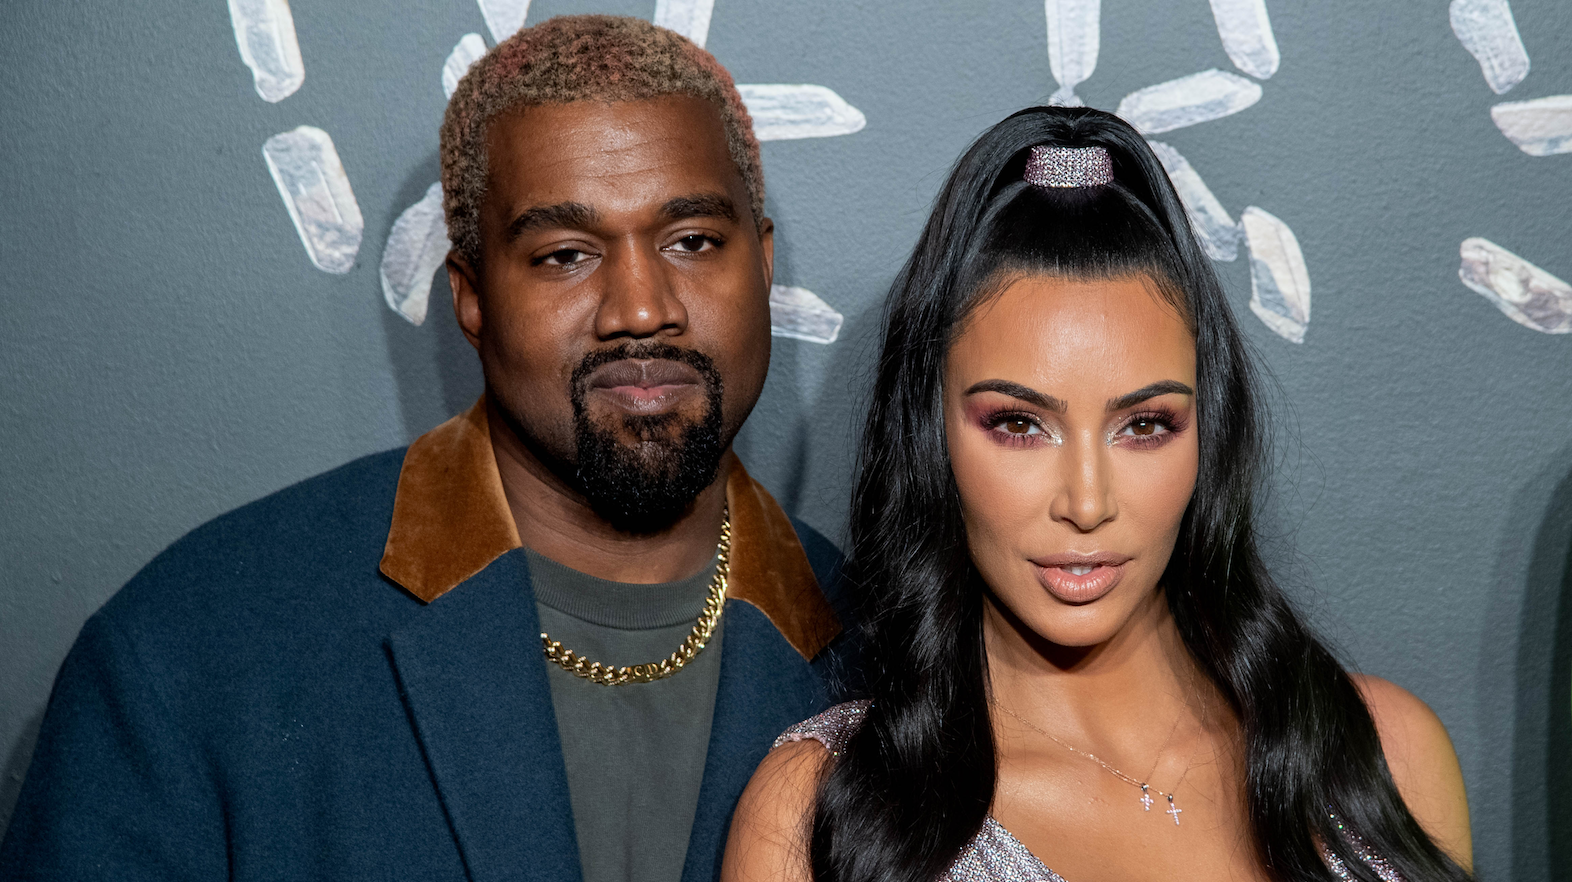 Kim Kardashian Says Guests Broke Down In Tears During Kanye West S Sunday Service It Was Magical Kanye West And Kim Kim Kardashian And Kanye Kim Kardashian